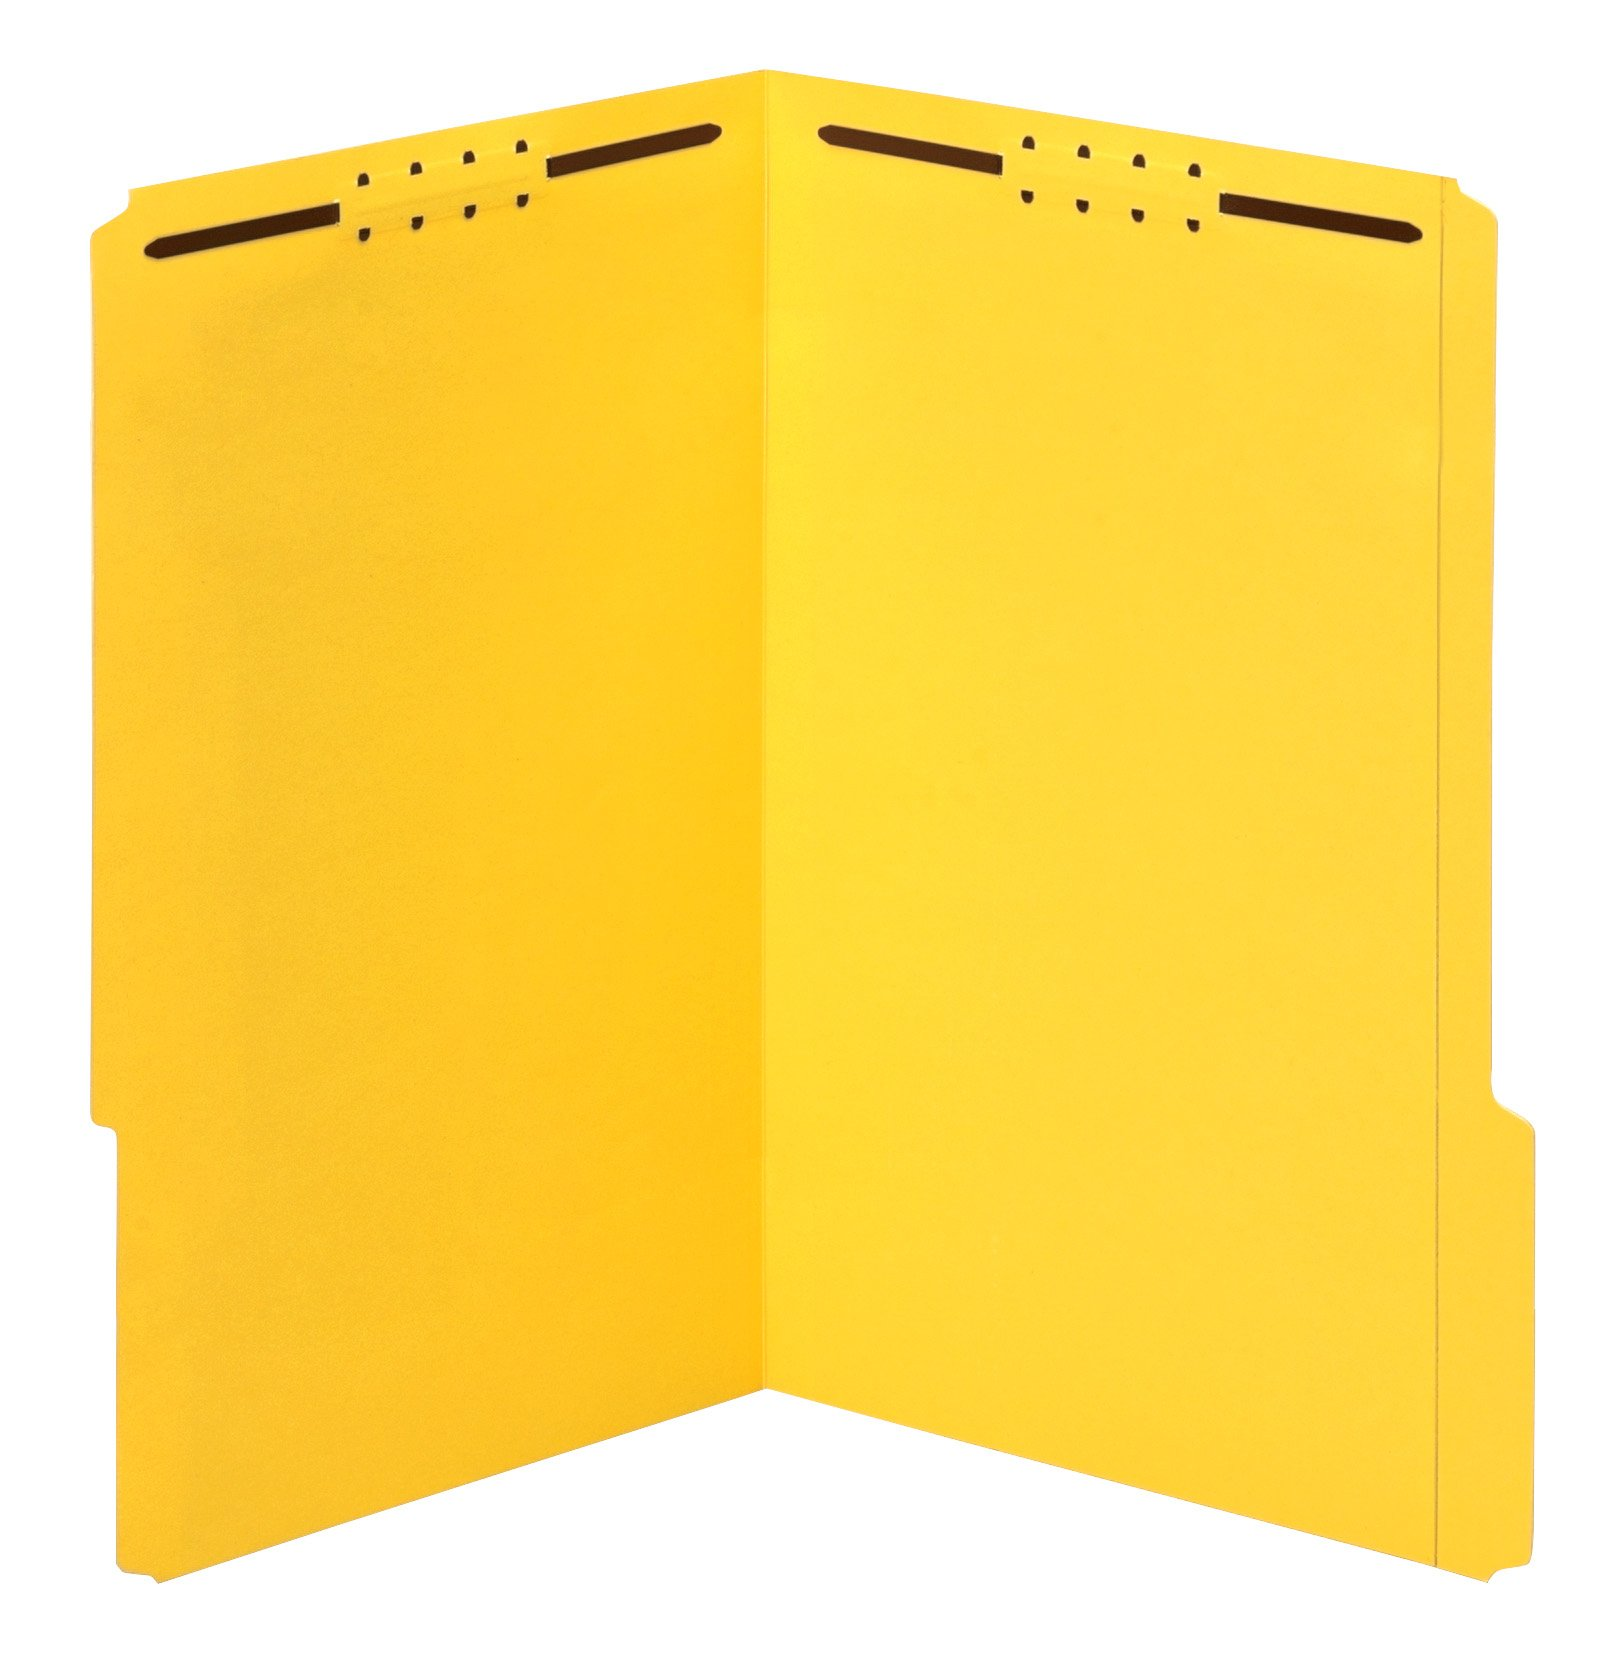 Globe-Weis/Pendaflex Fastener Folders, 1/3 Cut, Reinforced Tab, 2 Fasteners, Legal Size, Yellow, 50 Folders Per Box (27940)